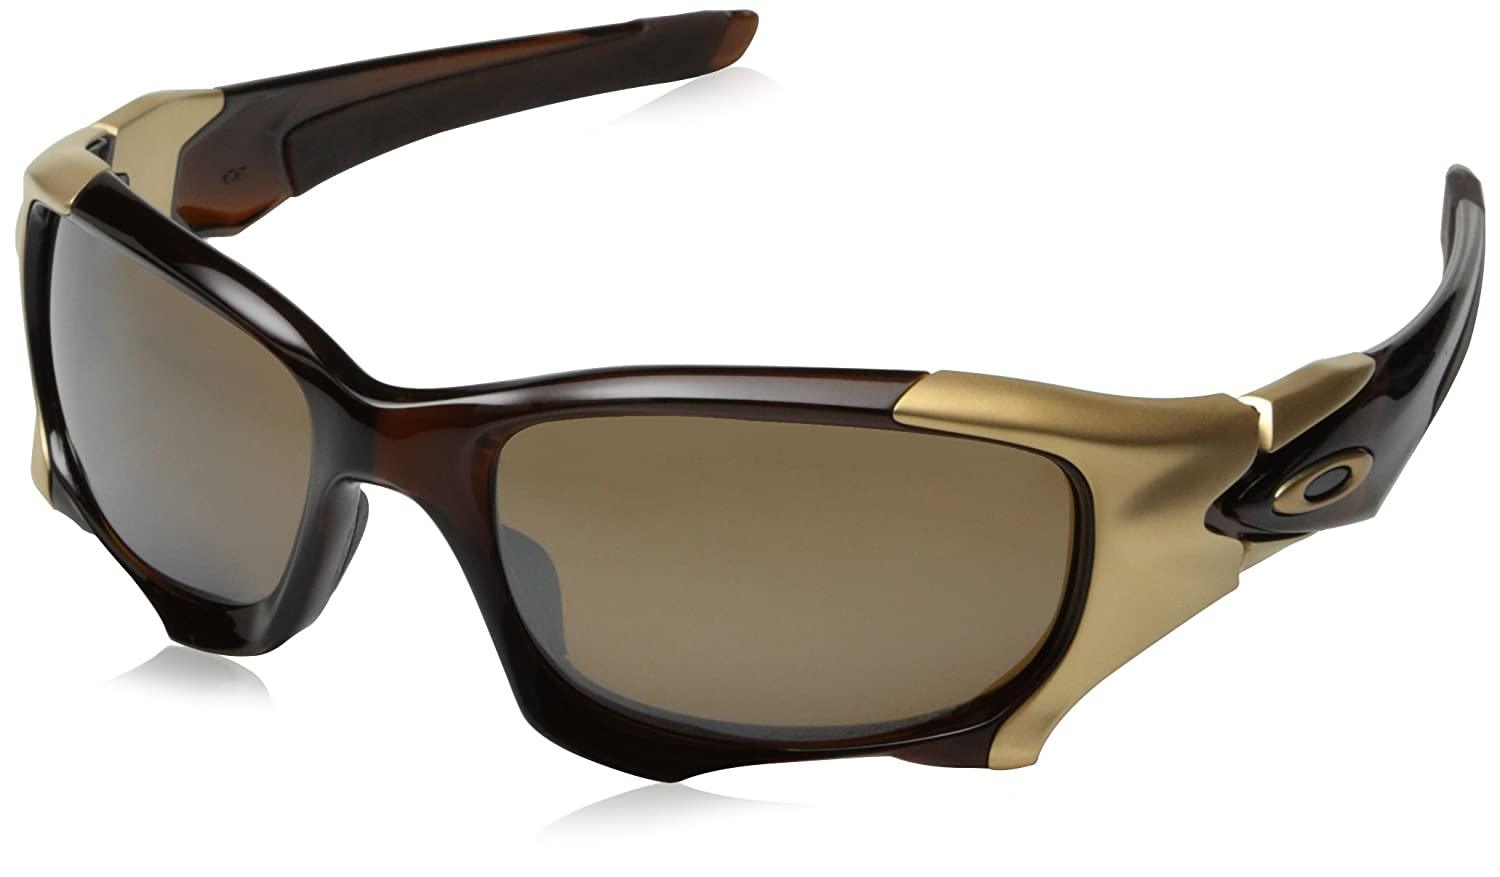 ba5758c883 Oakley Pit Boss 2 Rootbeer with Tungsten Iridium Polarized Lens  (OO9137-03)  Amazon.co.uk  Clothing